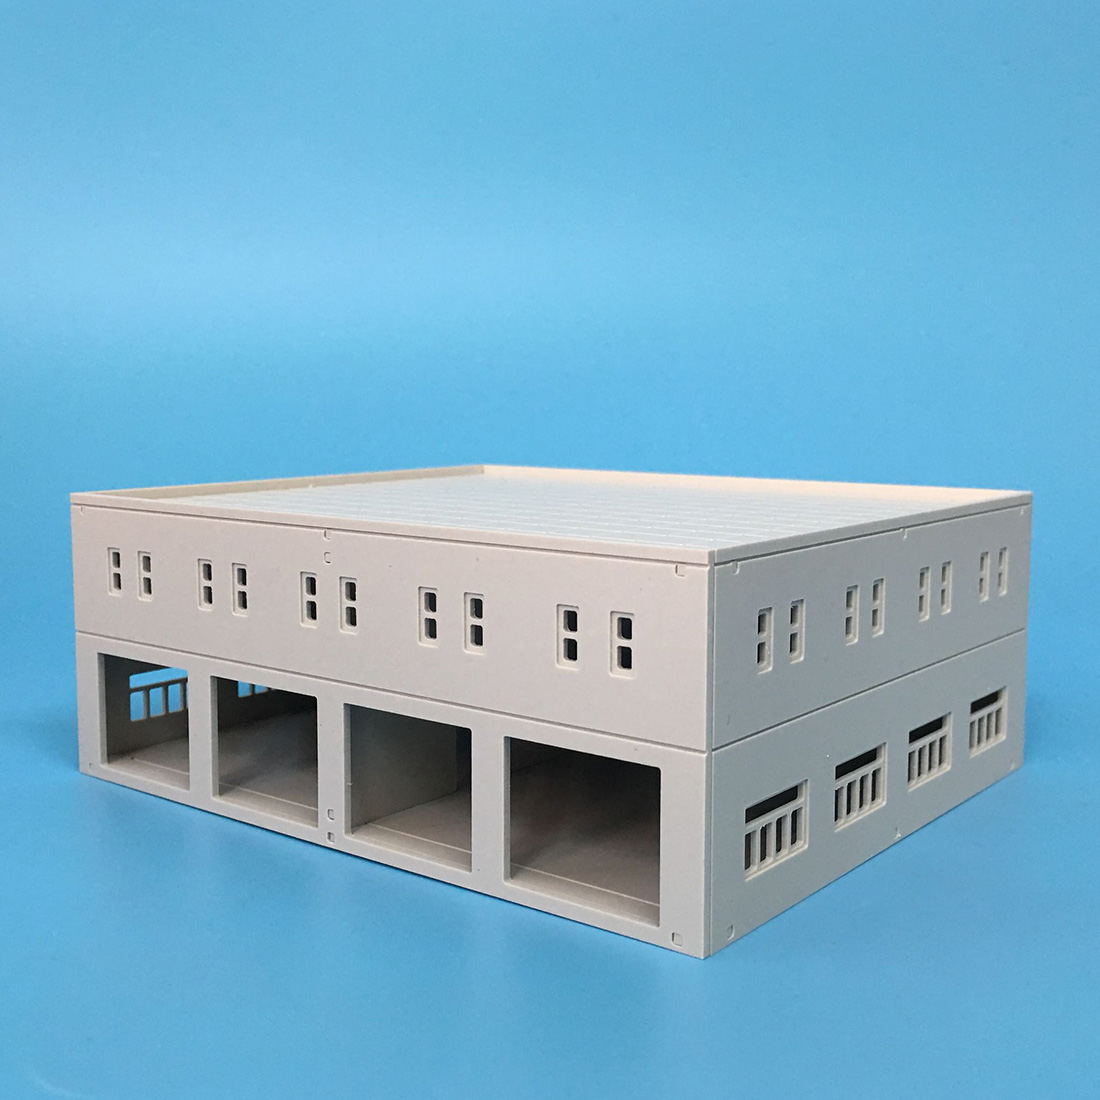 16 X 19 X 7.4cm 1:87  HO Scale Sand Table Decoration DIY Assembly Model Factory Model Accessories 2020 New Arrival